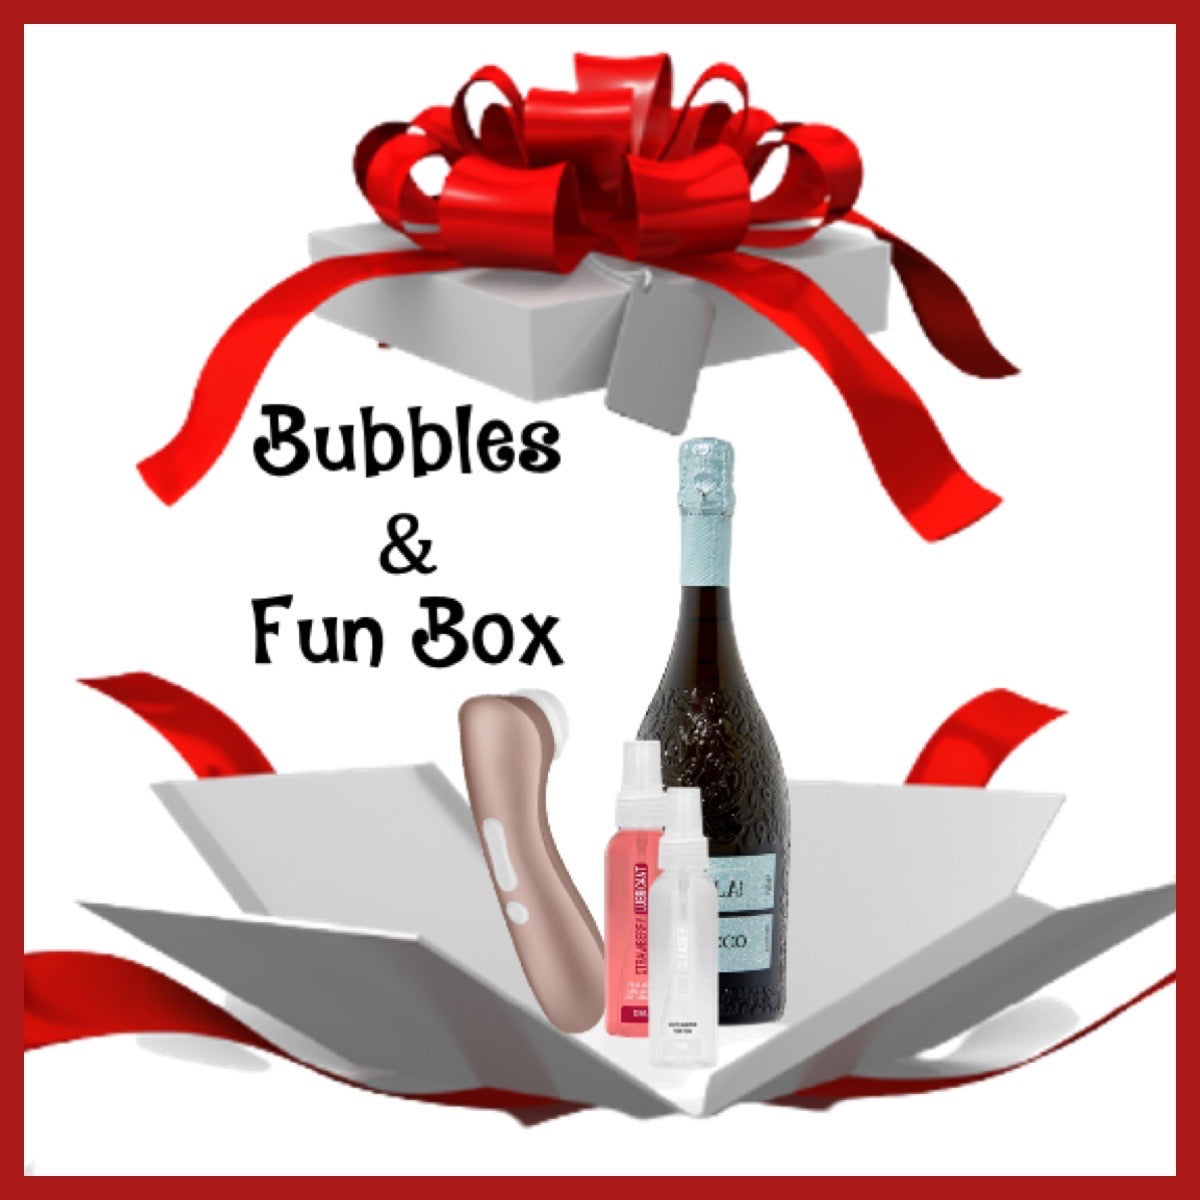 Bubbles & Fun Box